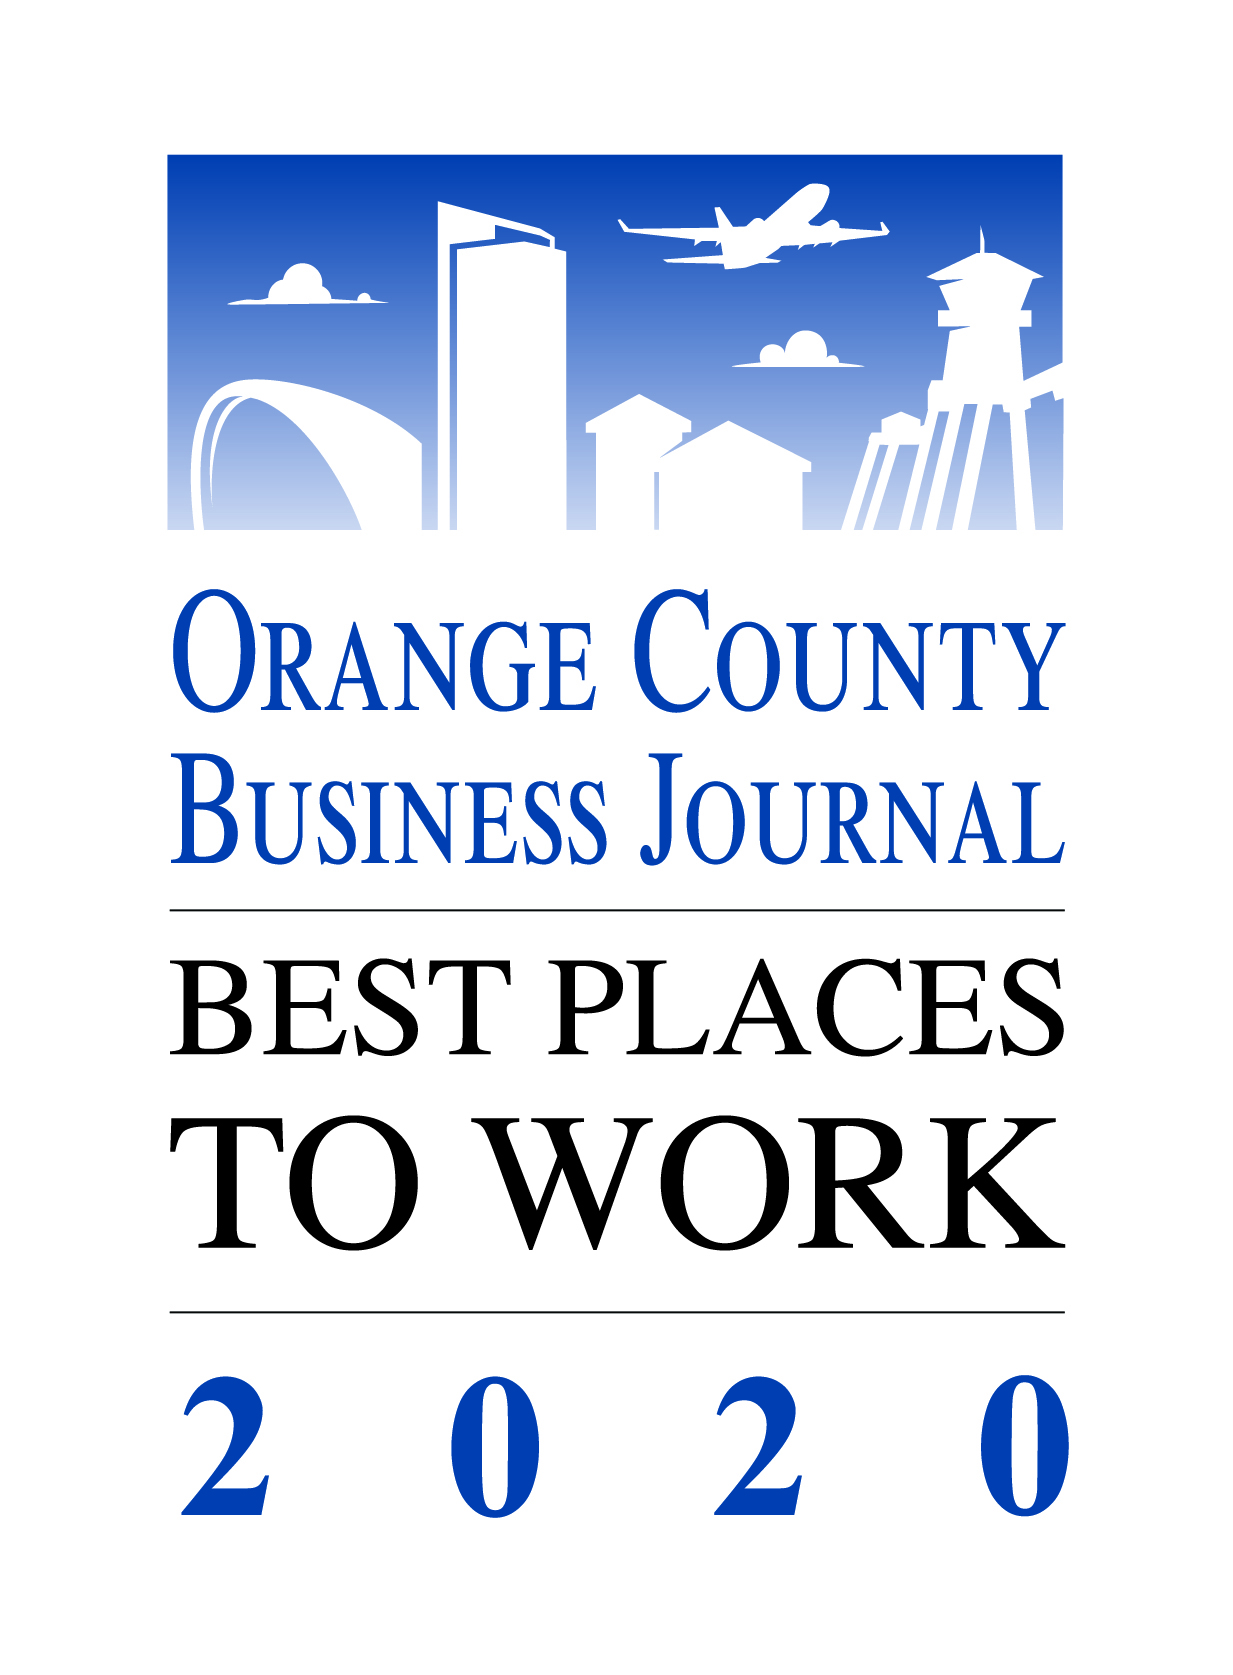 2020 Best Places to Work in Orange County